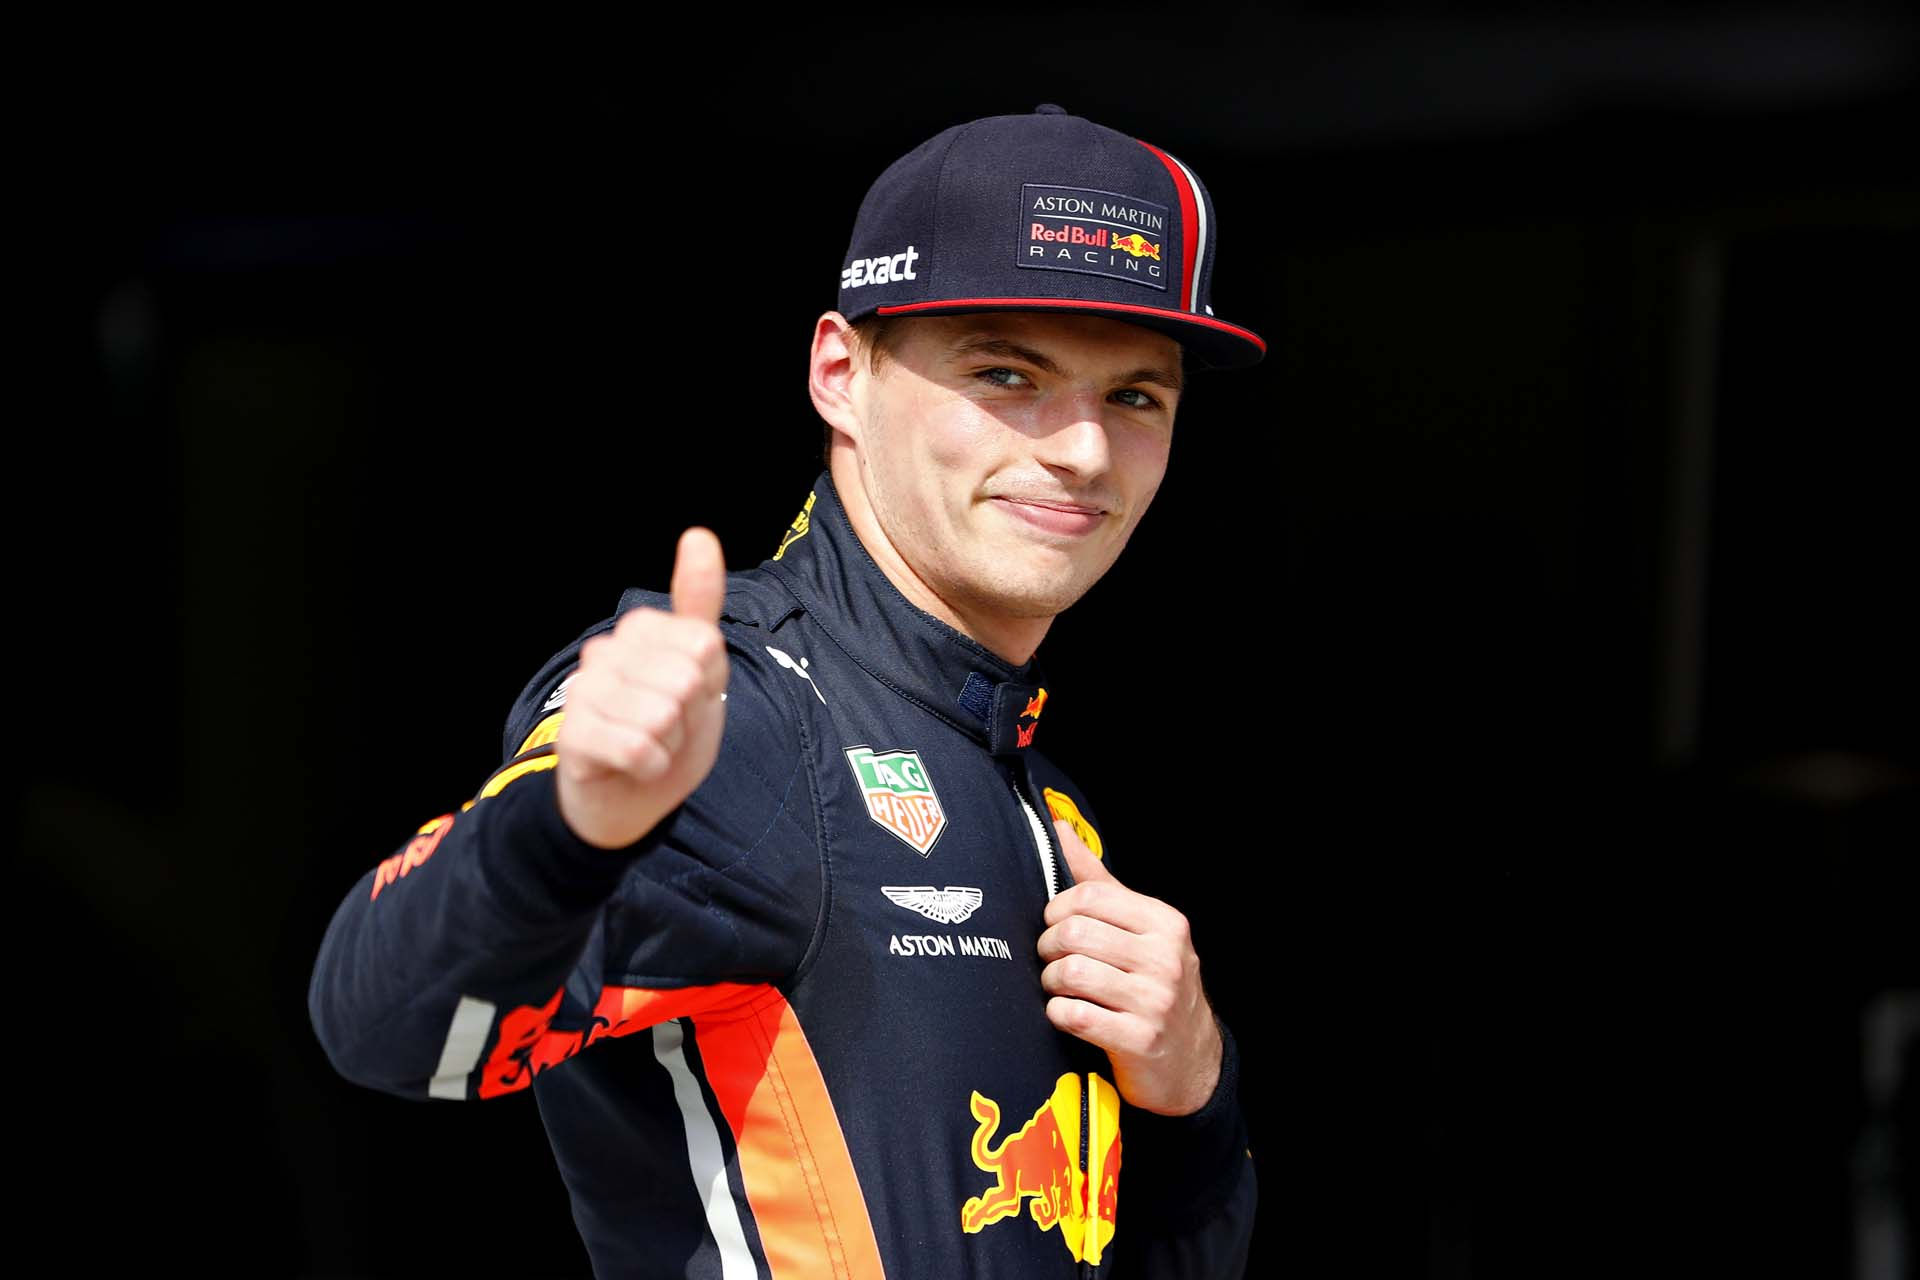 BUDAPEST, HUNGARY - AUGUST 03: Pole position qualifier Max Verstappen of Netherlands and Red Bull Racing celebrates in parc ferme during qualifying for the F1 Grand Prix of Hungary at Hungaroring on August 03, 2019 in Budapest, Hungary. (Photo by Will Taylor-Medhurst/Getty Images) // Getty Images / Red Bull Content Pool  // AP-2157SAK9N1W11 // Usage for editorial use only // Please go to www.redbullcontentpool.com for further information. //